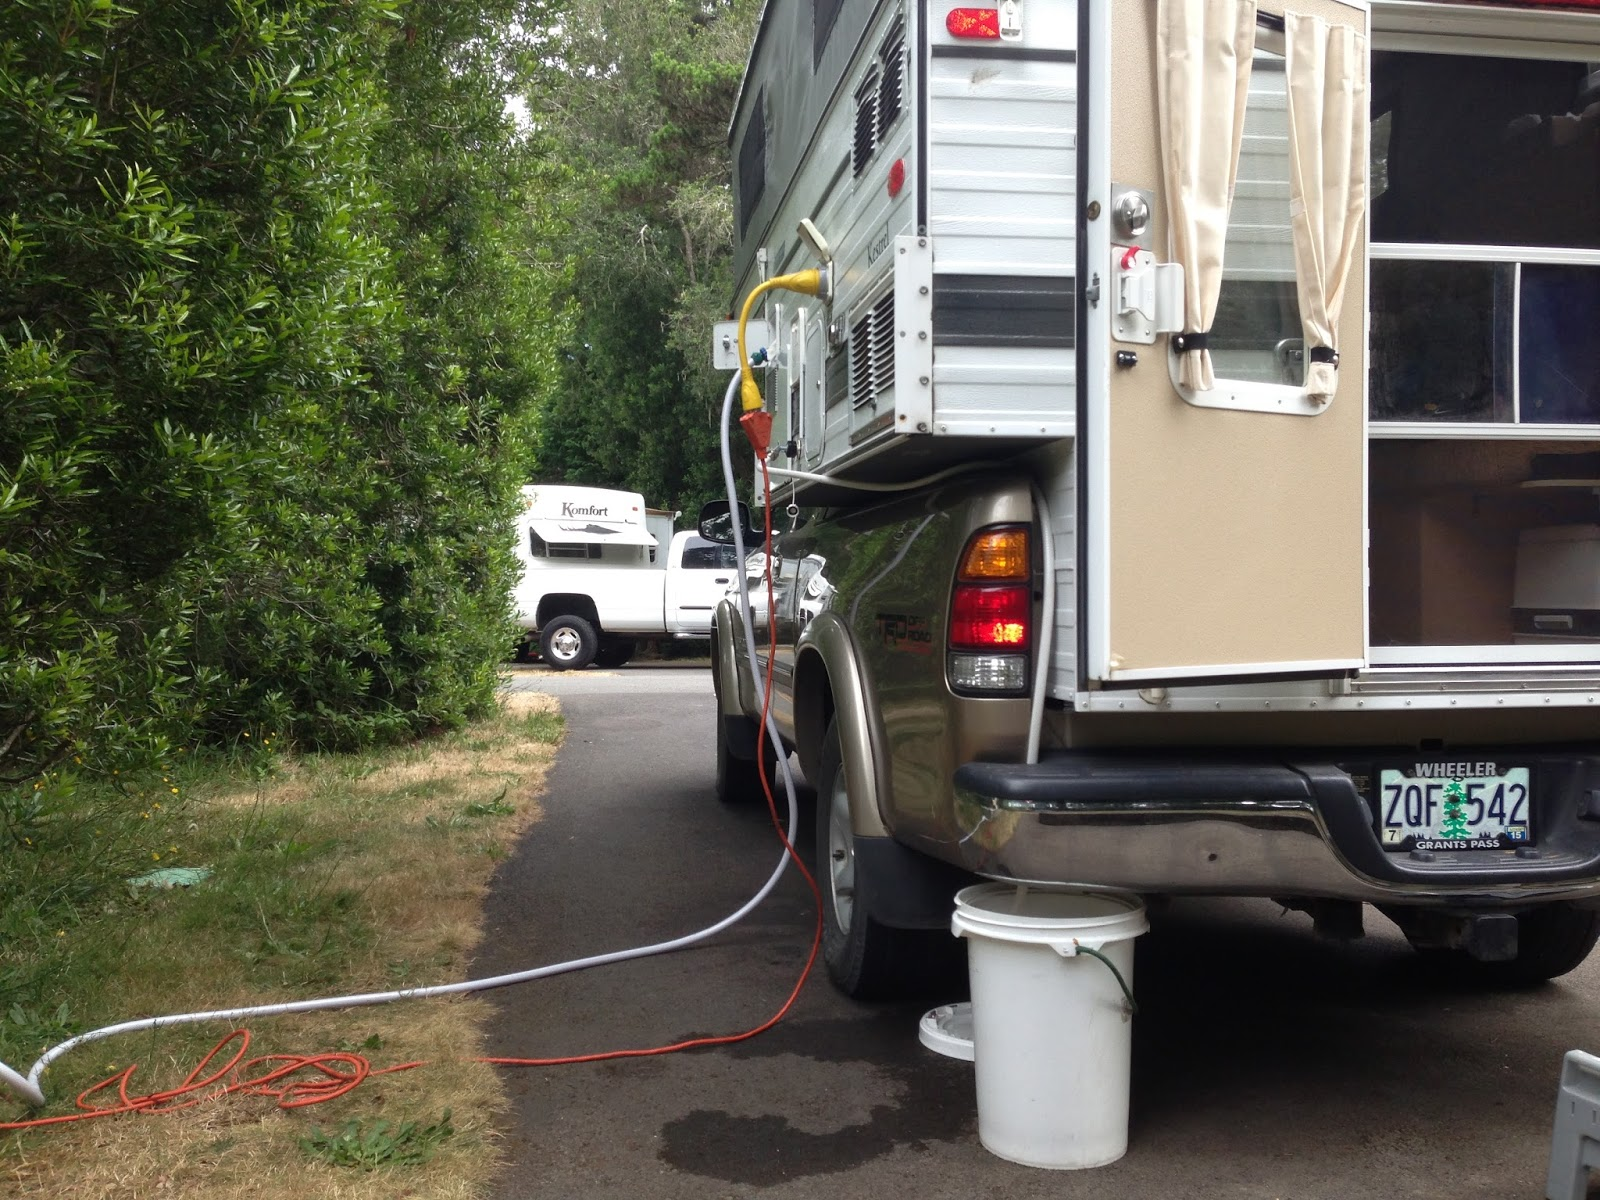 Ordering The Granby Strolling Amok Trailer Battery Wiring Questions Expedition Portal In A Regular Rv Park With Hookups You Can Four Wheels Freshwater Inlet And